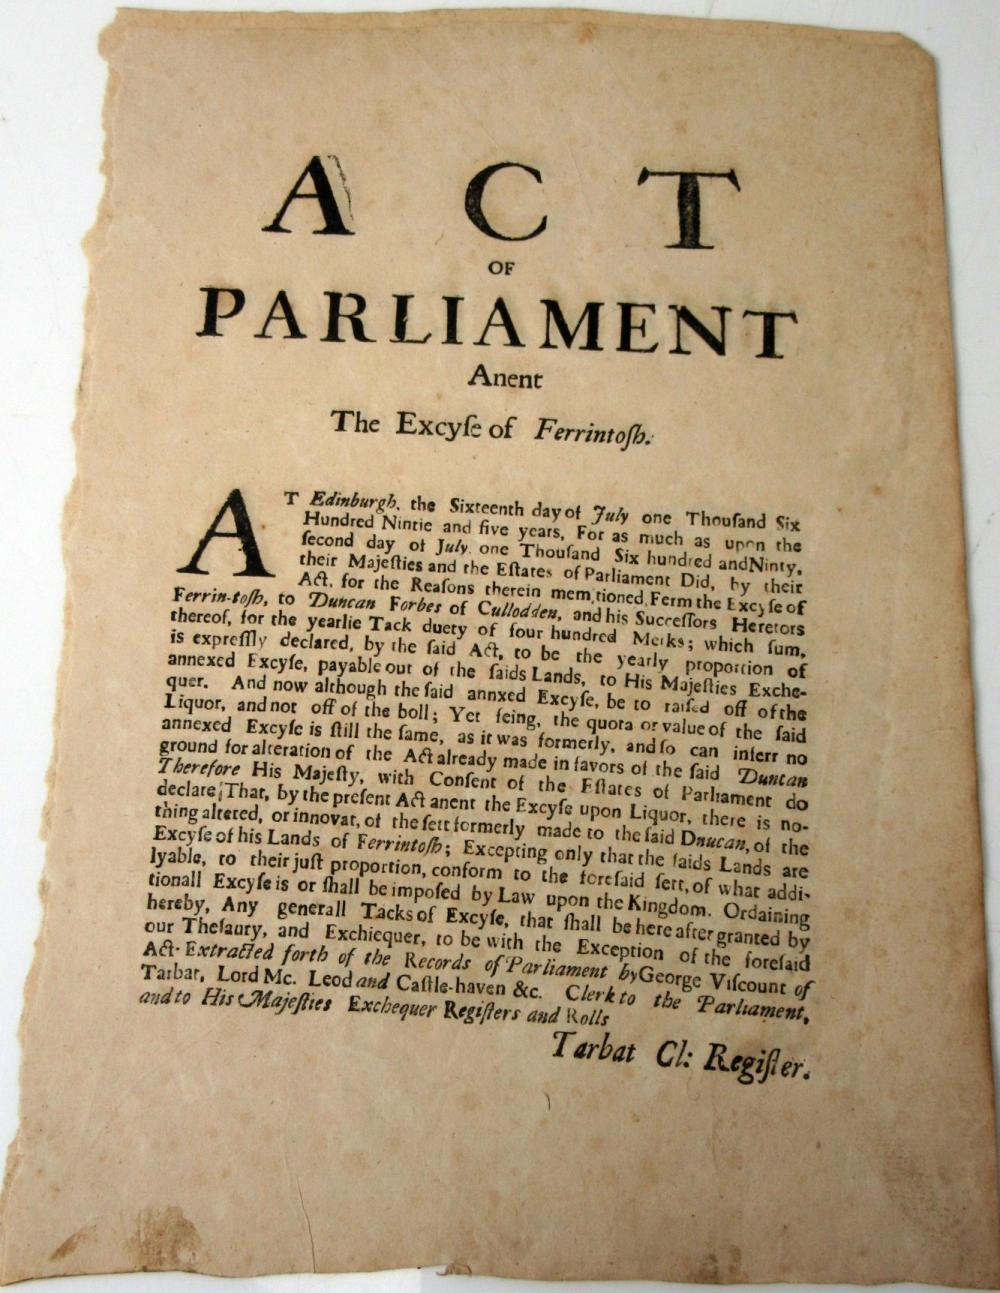 LIQUOR EXCISE DUTY: DUNCAN FORBES AND VISCOUNT TARBAT 2 BROADSIDES